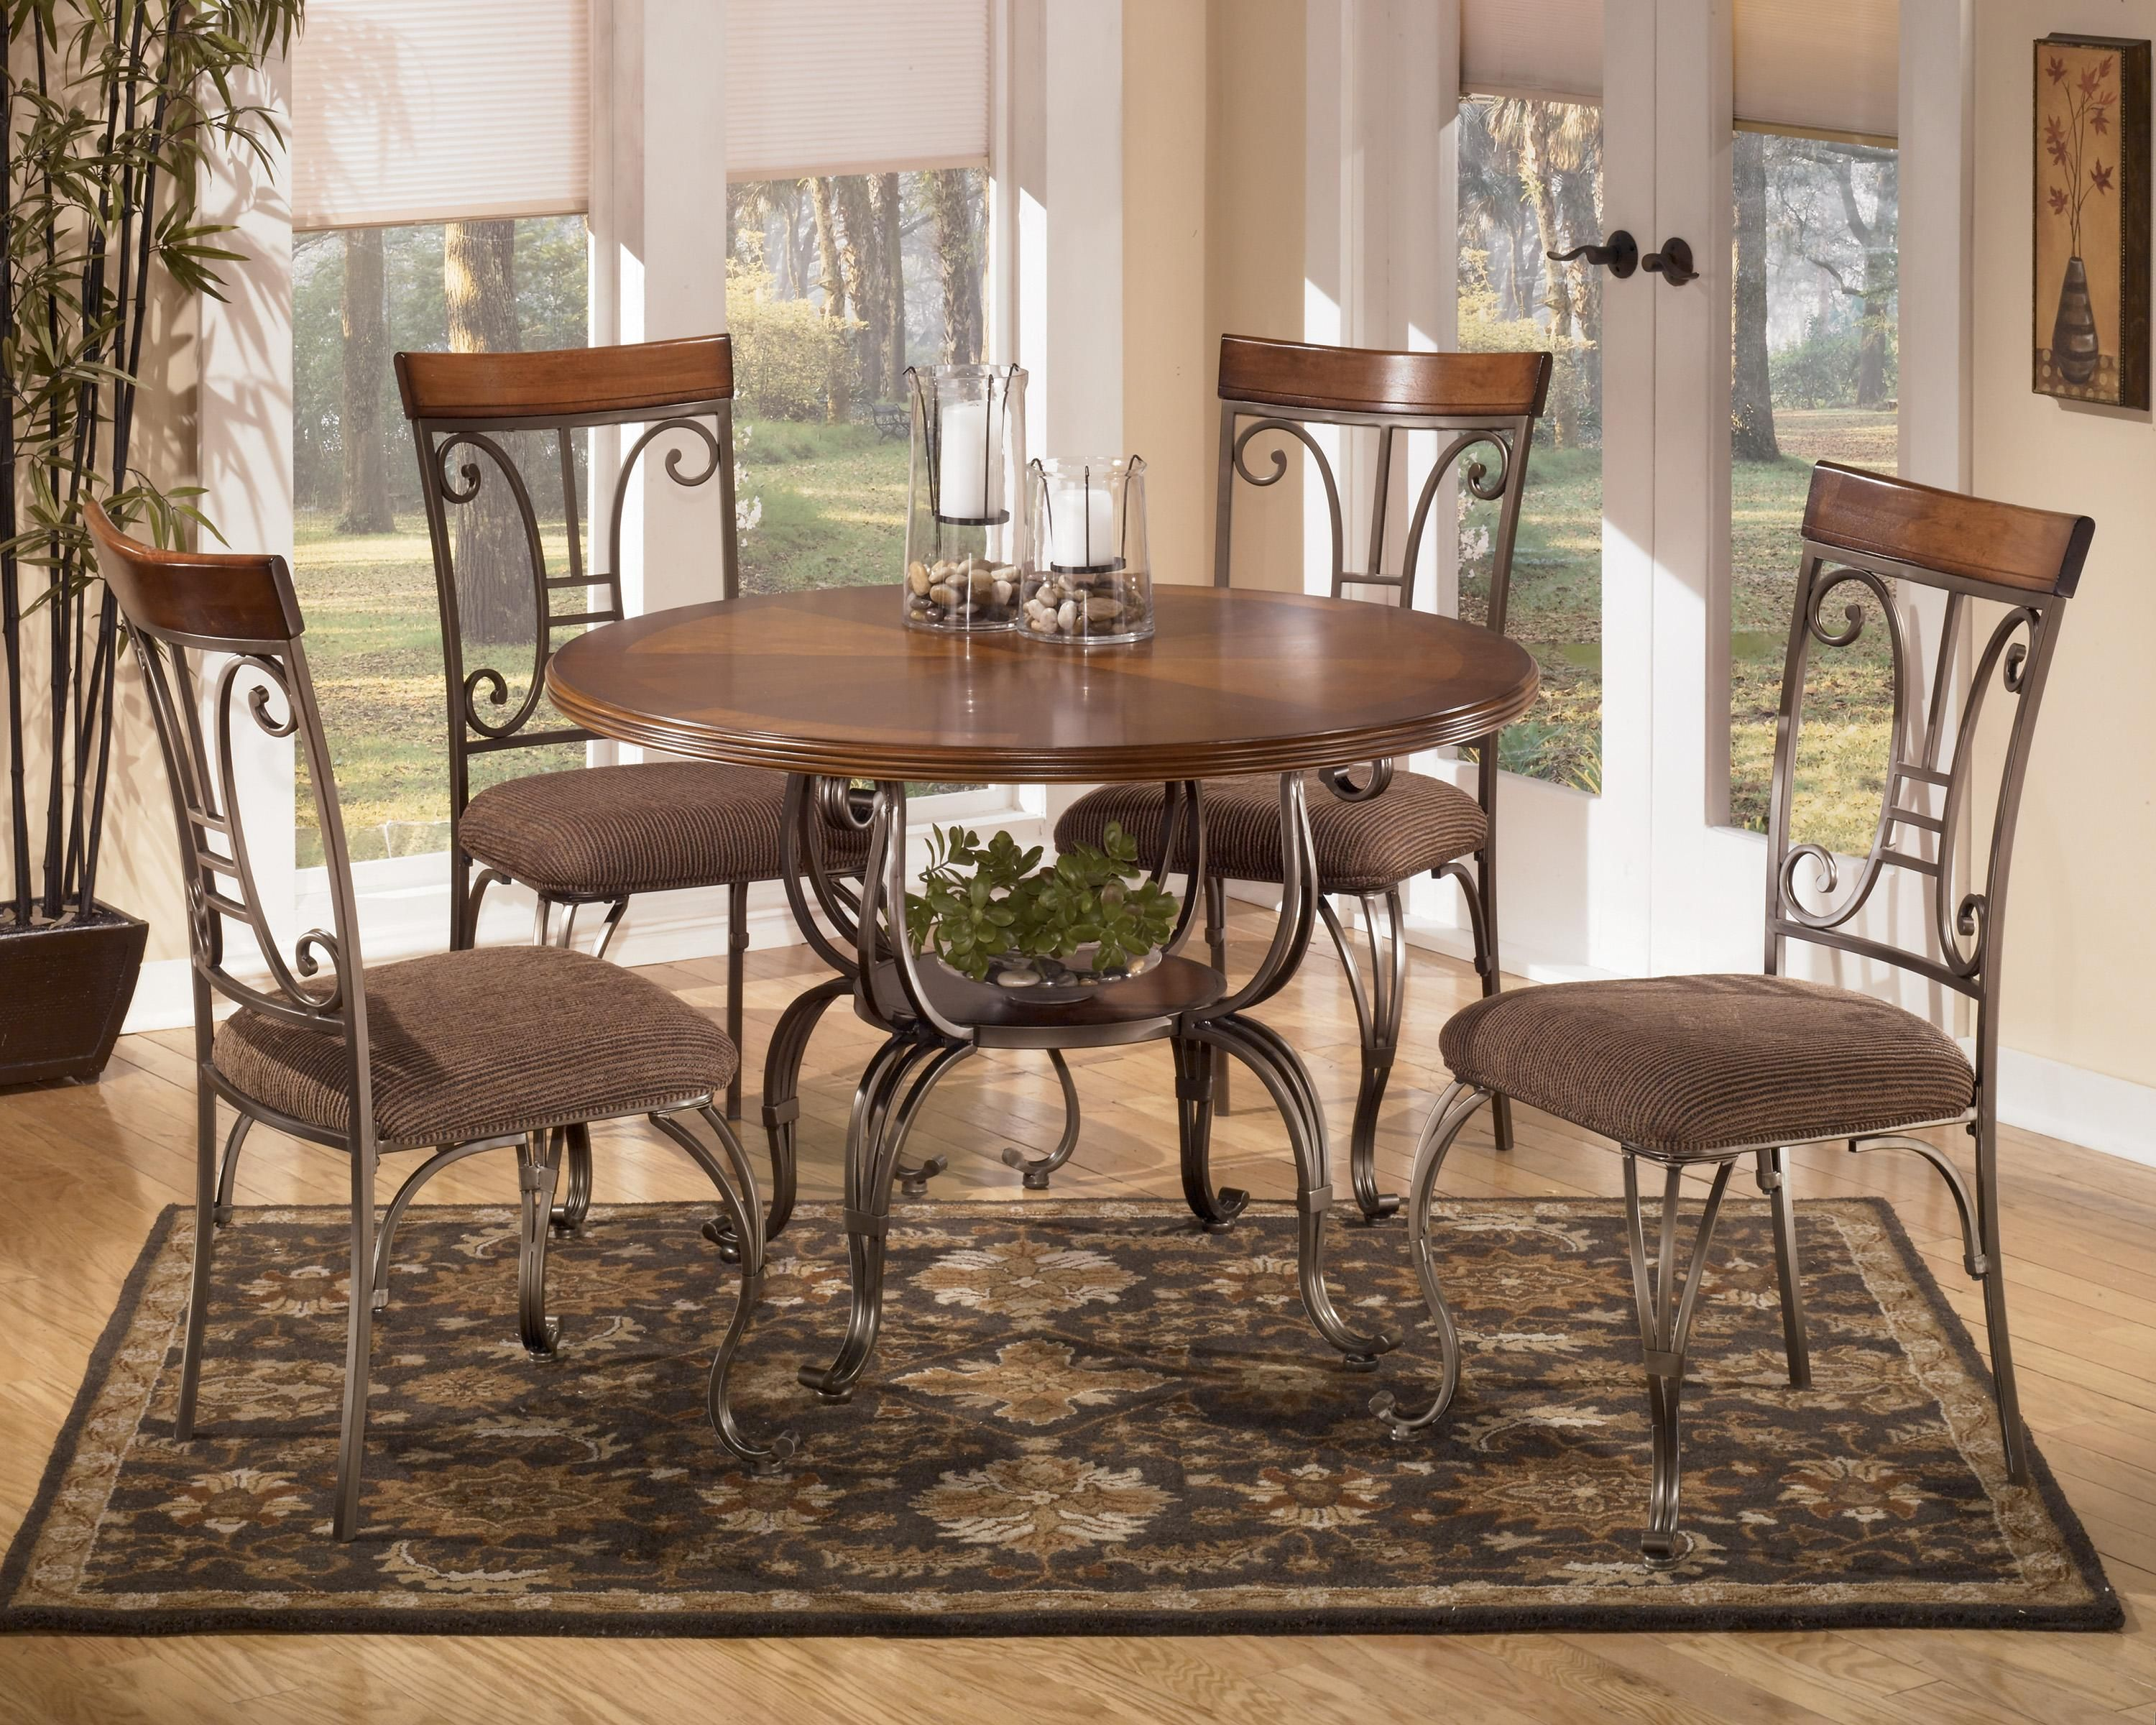 Plentywood 5-Piece Round Dining Table Set by Signature Design by Ashley & Plentywood 5-Piece Round Dining Table Set by Signature Design by ...